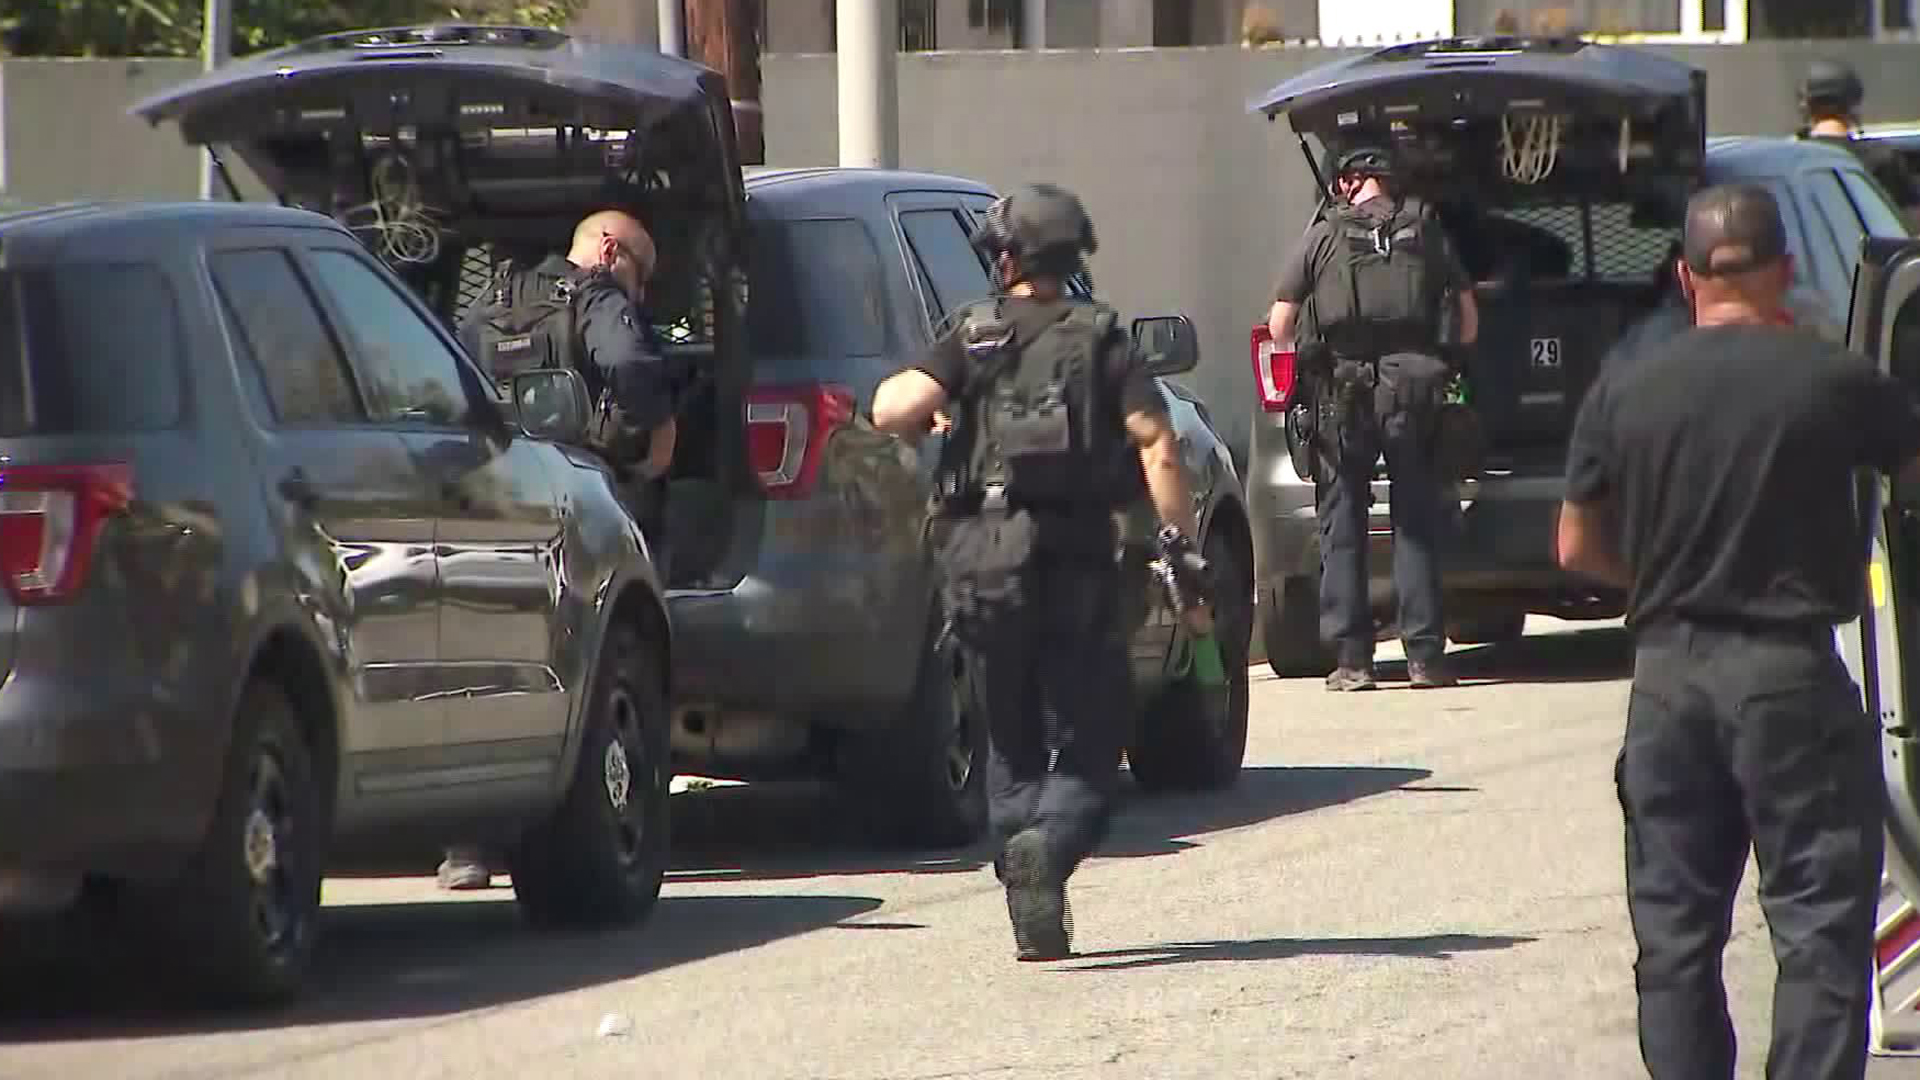 Uniformed officers walk through the scene in the South Los Angeles neighborhood of Vermont Knolls, where a person was fatally shot, on Aug. 29, 2019. (Credit: KTLA)